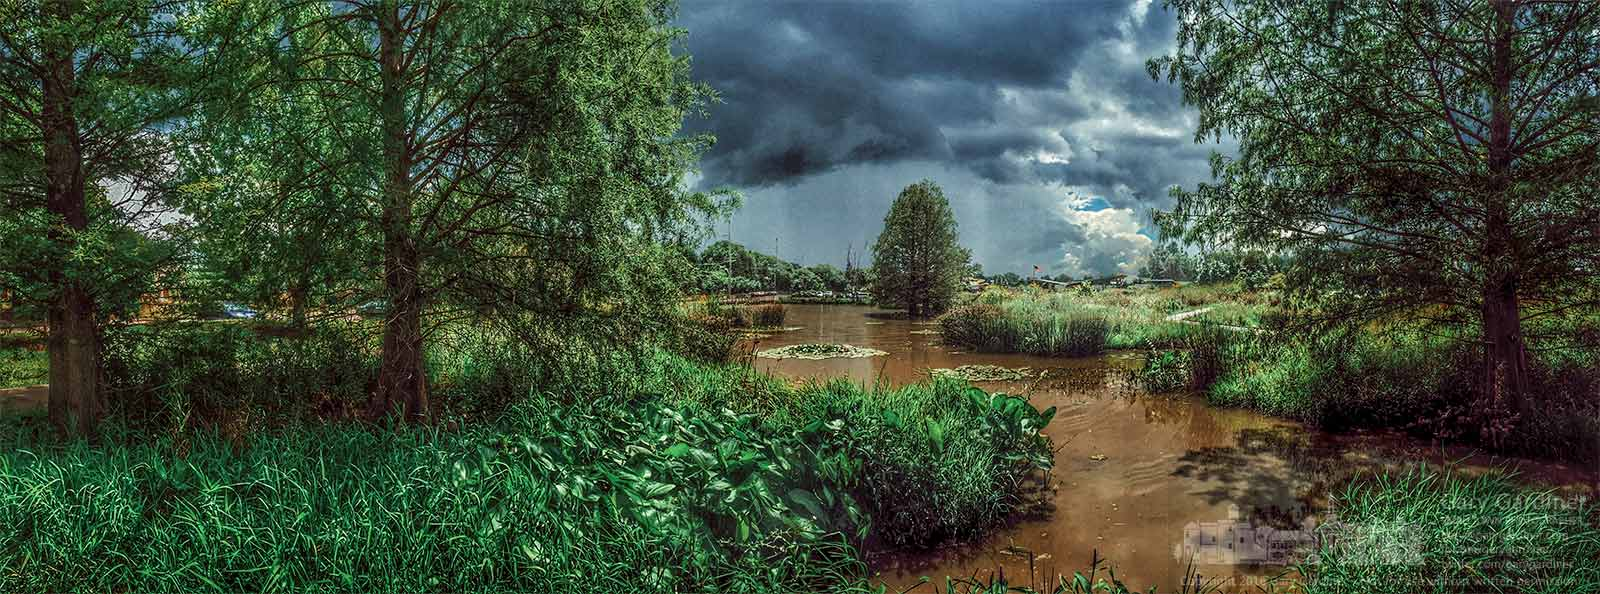 A late afternoon rainstorm moves south of the wetlands at Highlands Park in Westerville. My Final Photo for August 11, 2016.